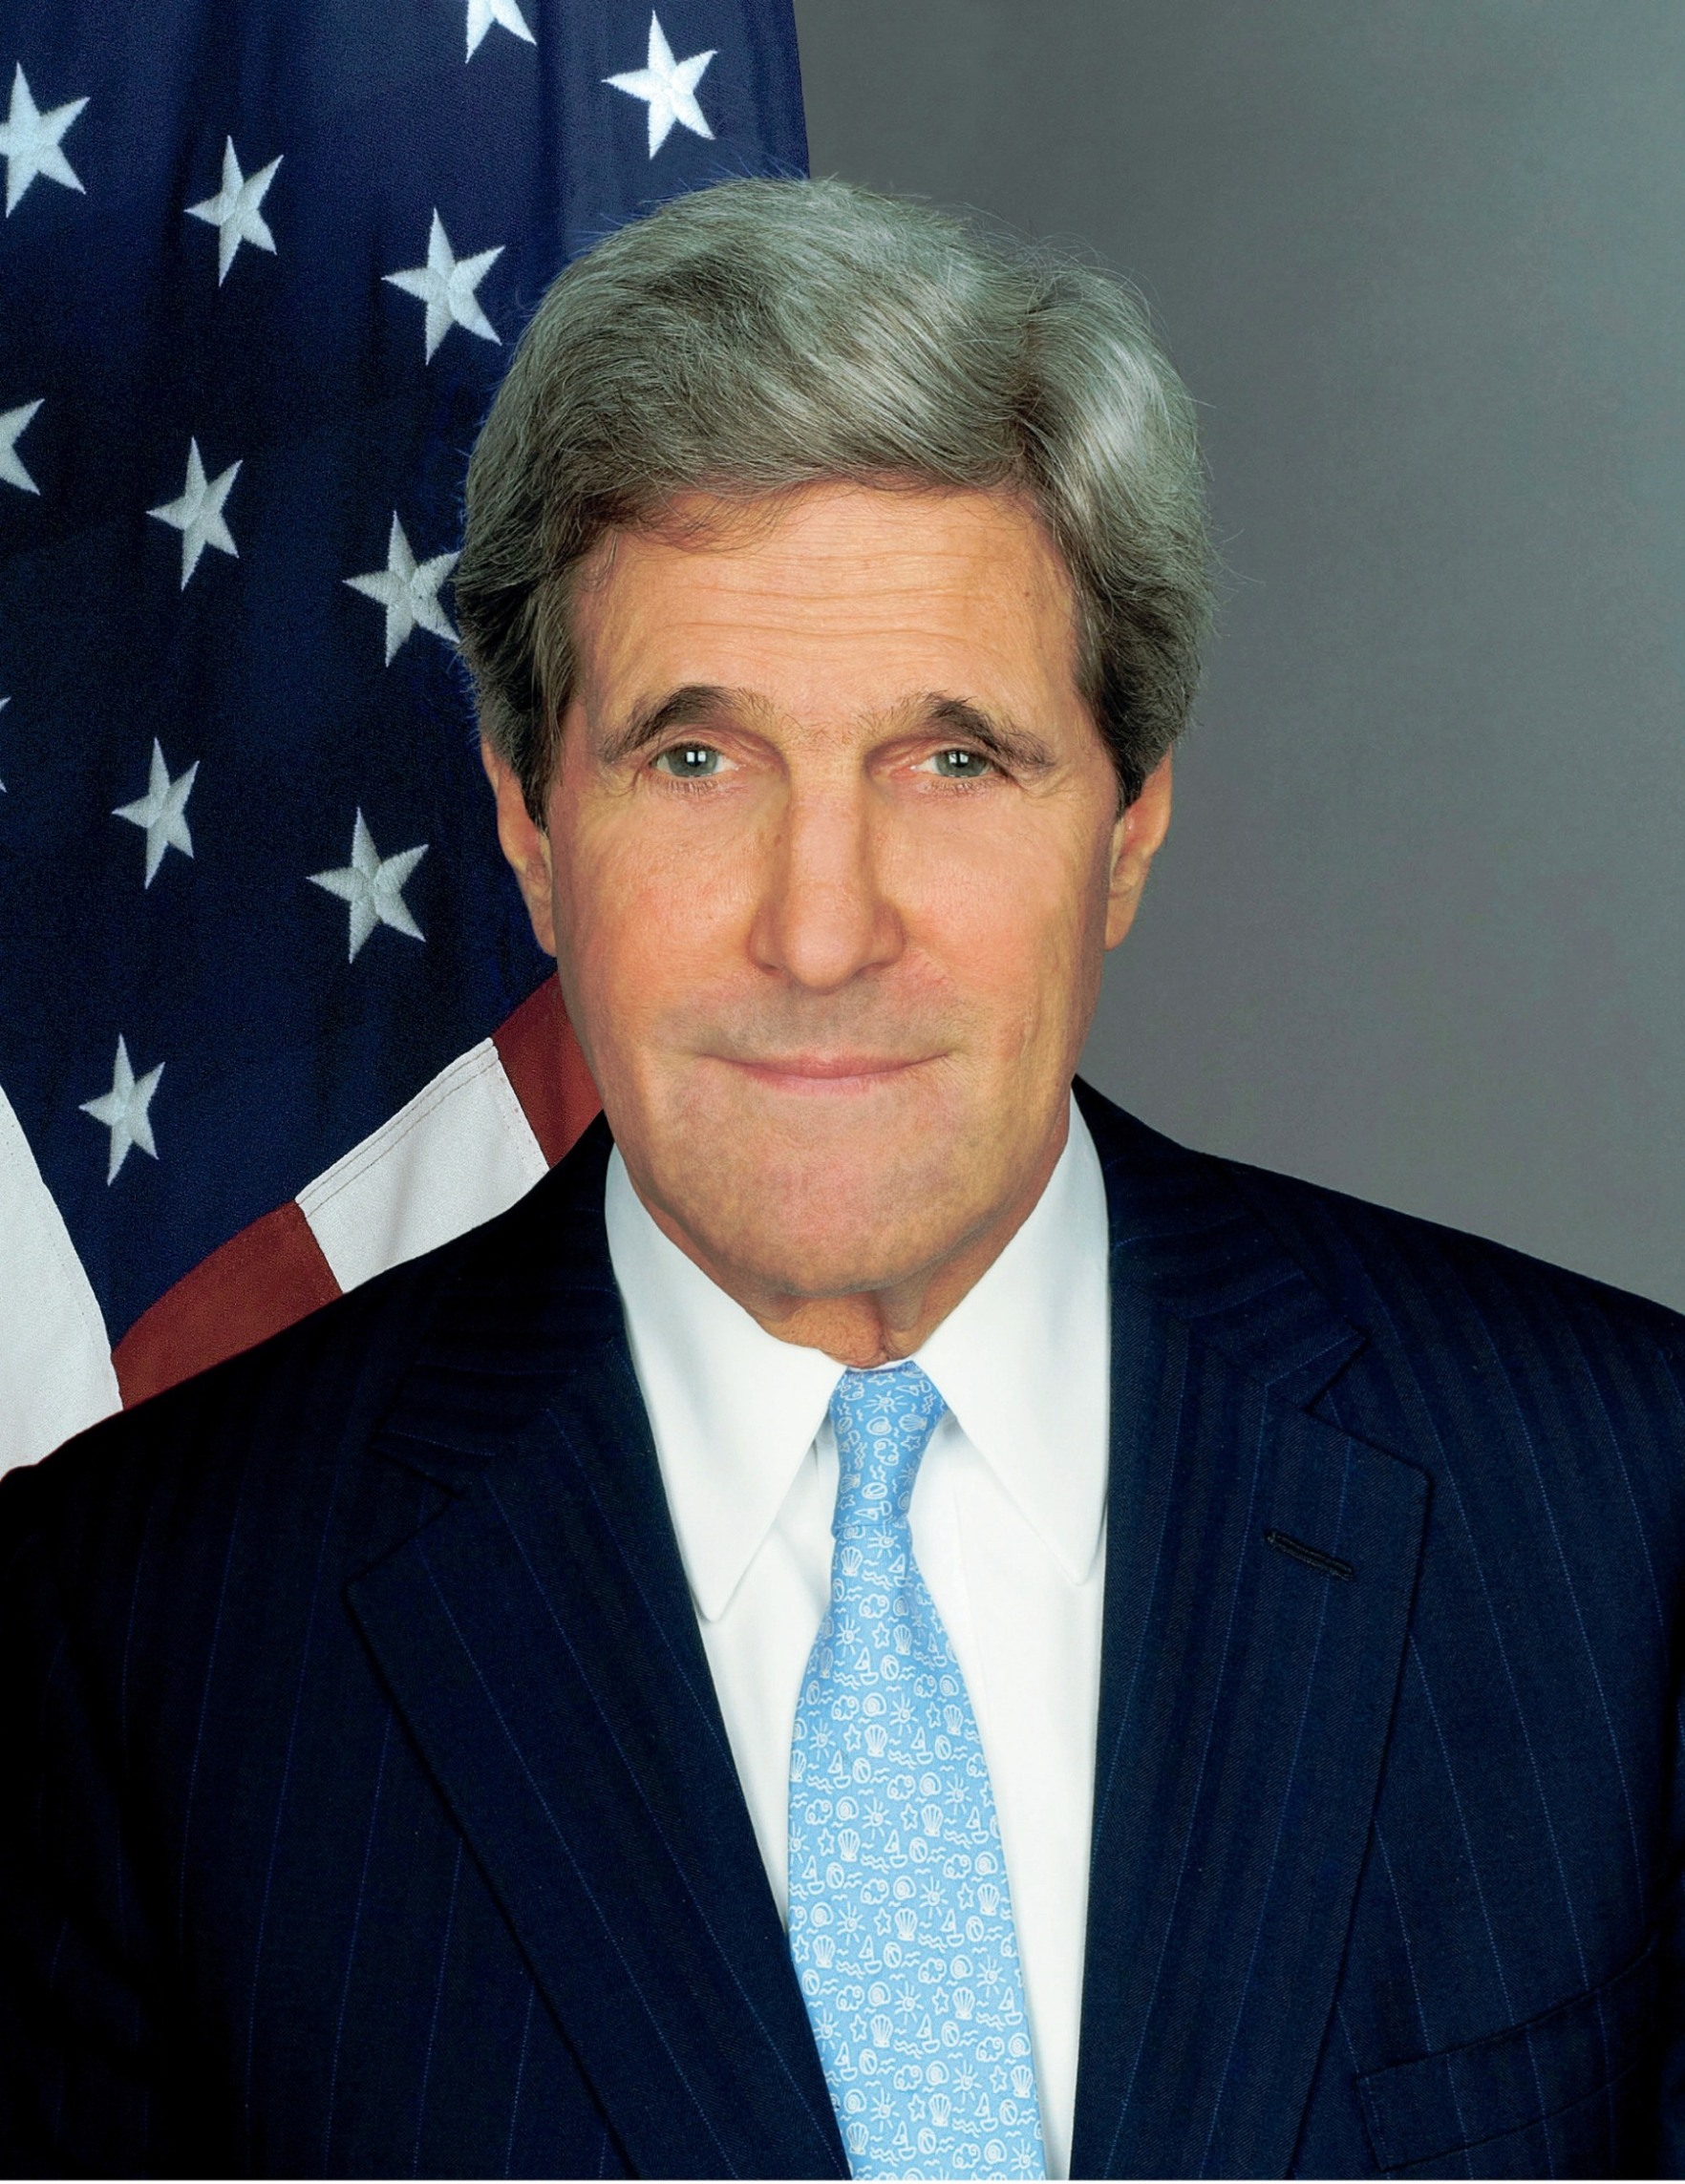 U.S. Secretary of State schedules Kyiv visit for July 7